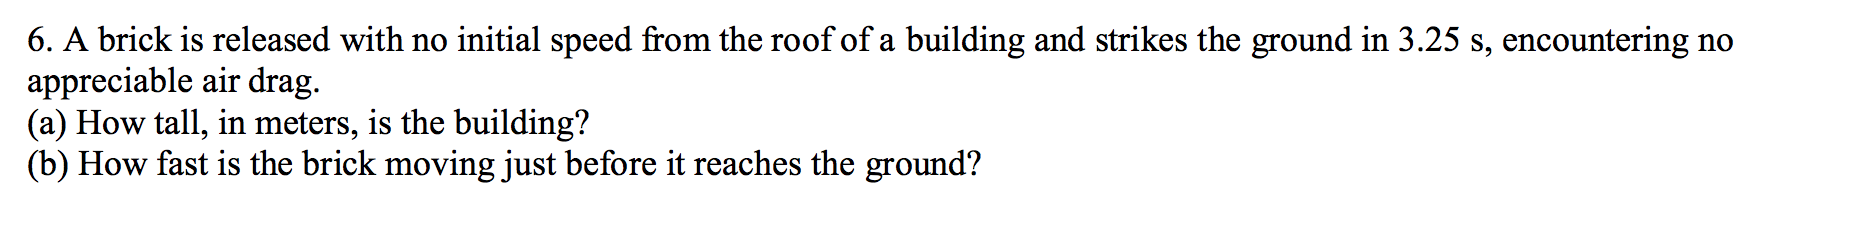 6. A brick is released with no initial speed from the roof of a building and strikes the ground in 3.25 s, encountering appreciable air drag. (a) How tall, in meters, is the building? (b) How fast is the brick moving just before it reaches the ground? no